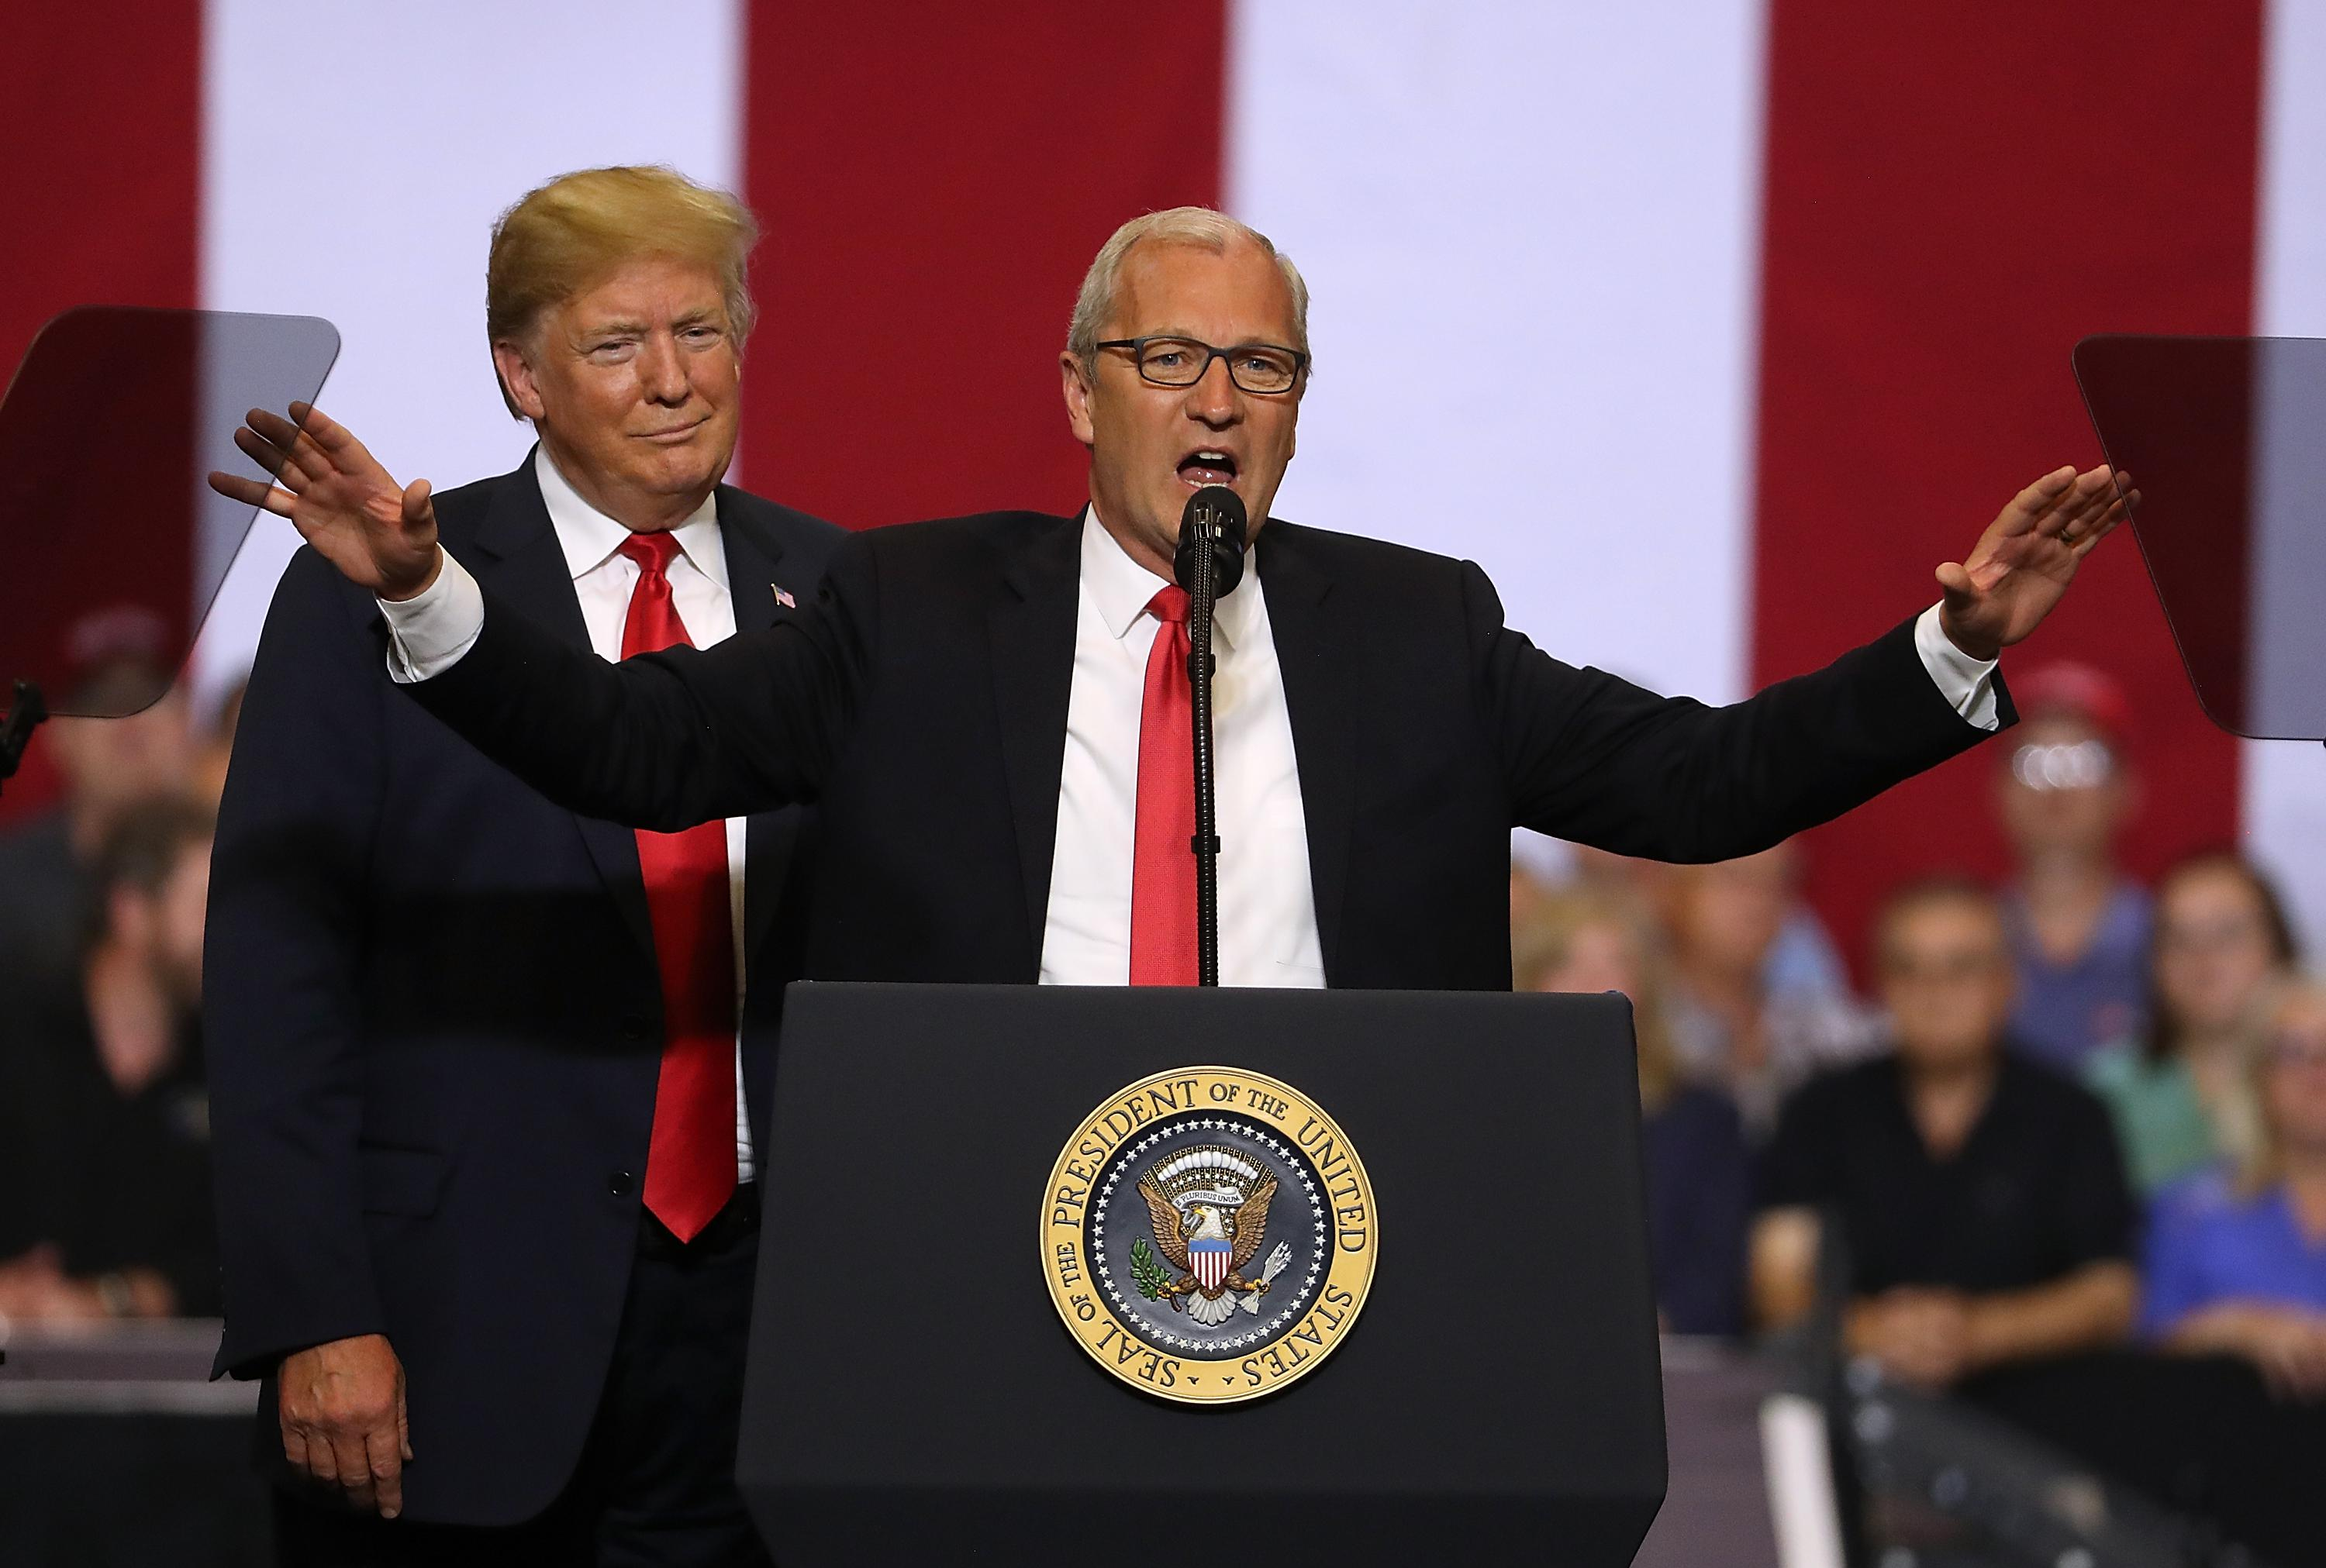 Donald Trump looks on as Kevin Cramer speaks at a June rally in Fargo, North Dakota.